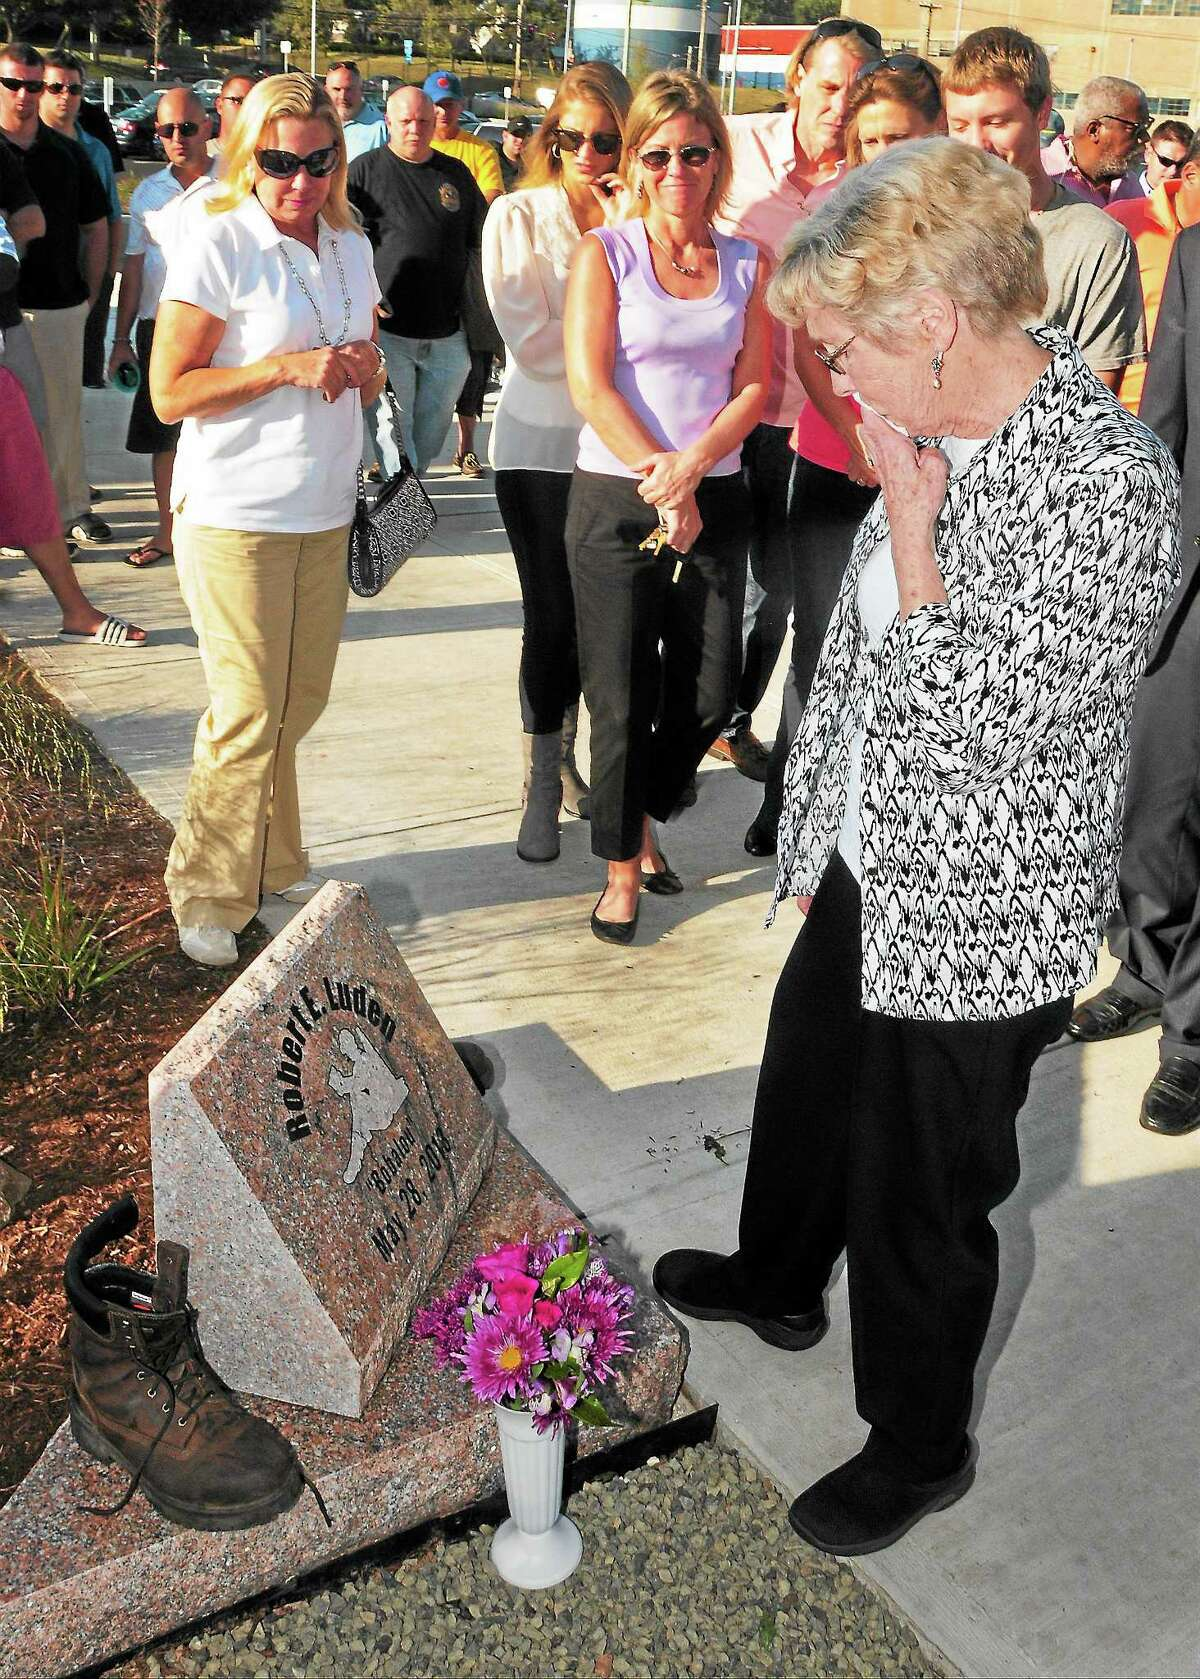 Annie Luden of East Haven, right, with family and friends, rear, Friday at the West Haven Railroad Station during the unveiling of a memorial for her son, Robert E. Luden, a railroad worker who was killed by a train.